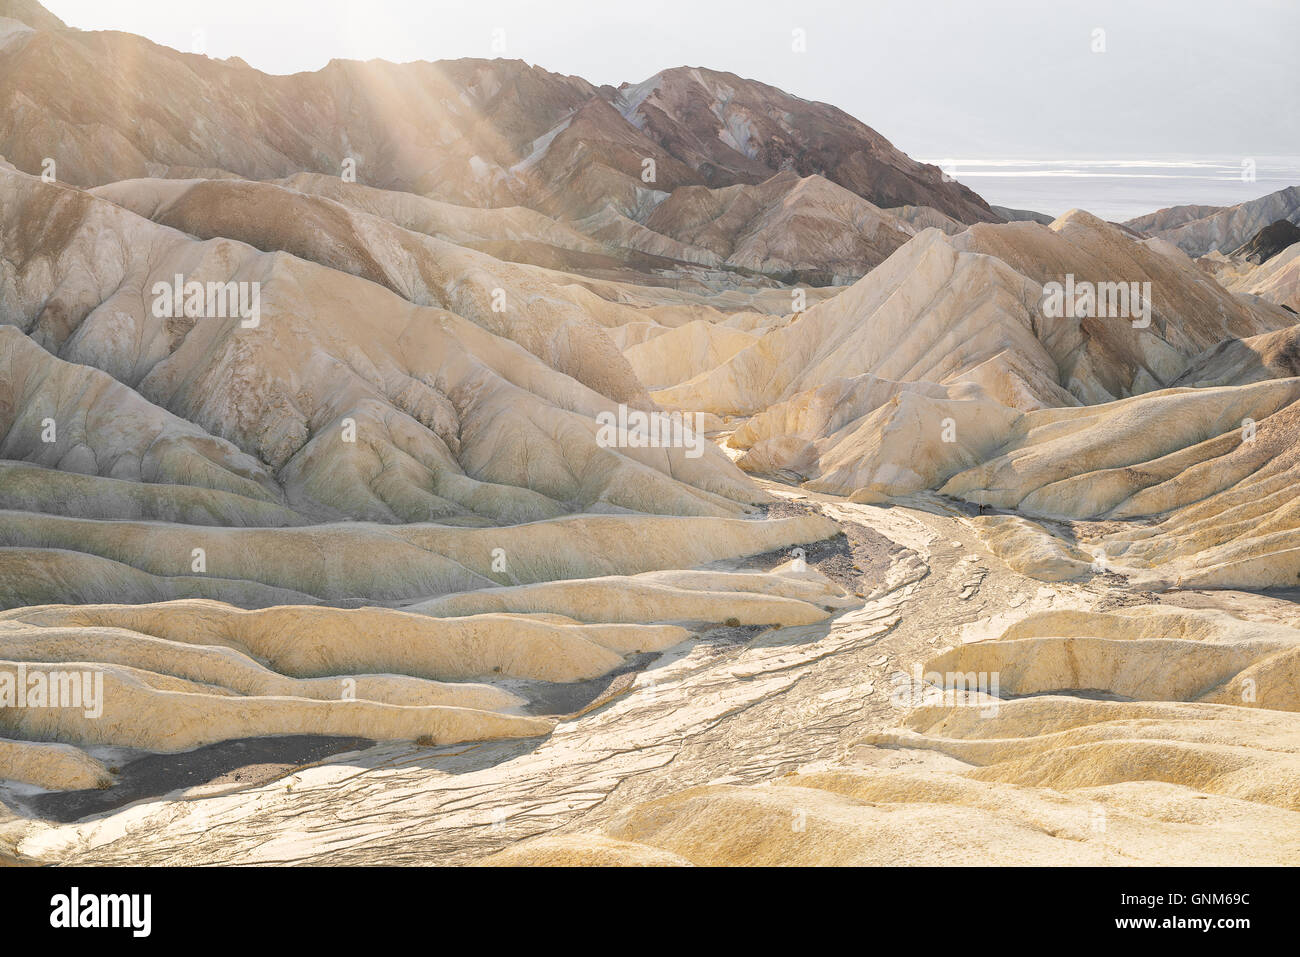 The desert in Death Valley National Park - Stock Image